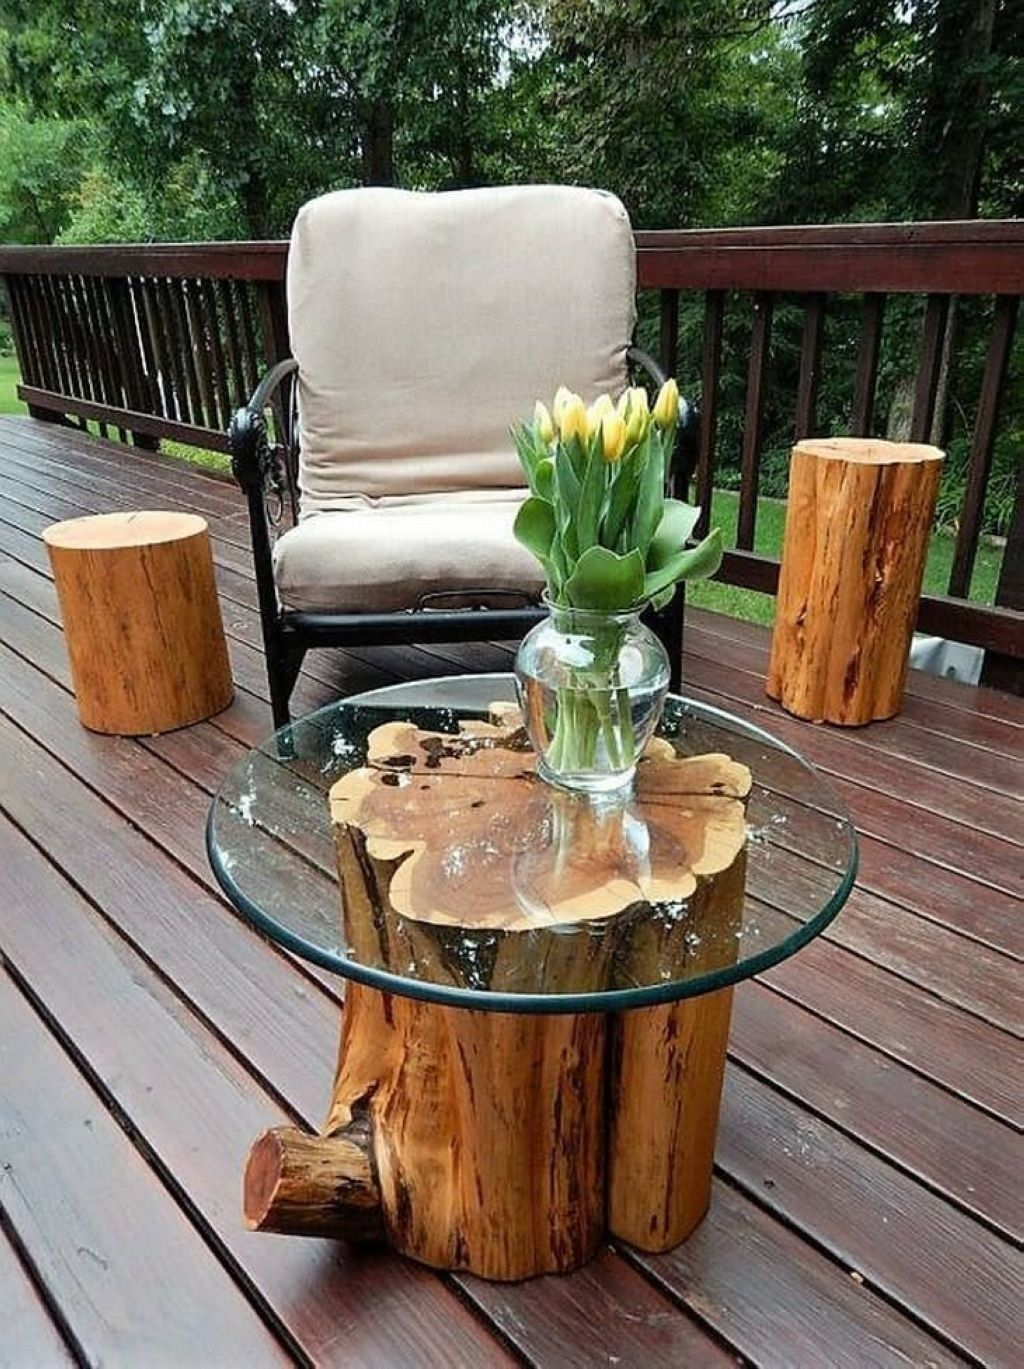 Beautiful Rustic Wood Outdoor Patio Furniture Design 62 Toparchitecture Diy Outdoor Wood Projects Outdoor Wood Projects Diy Coffee Table